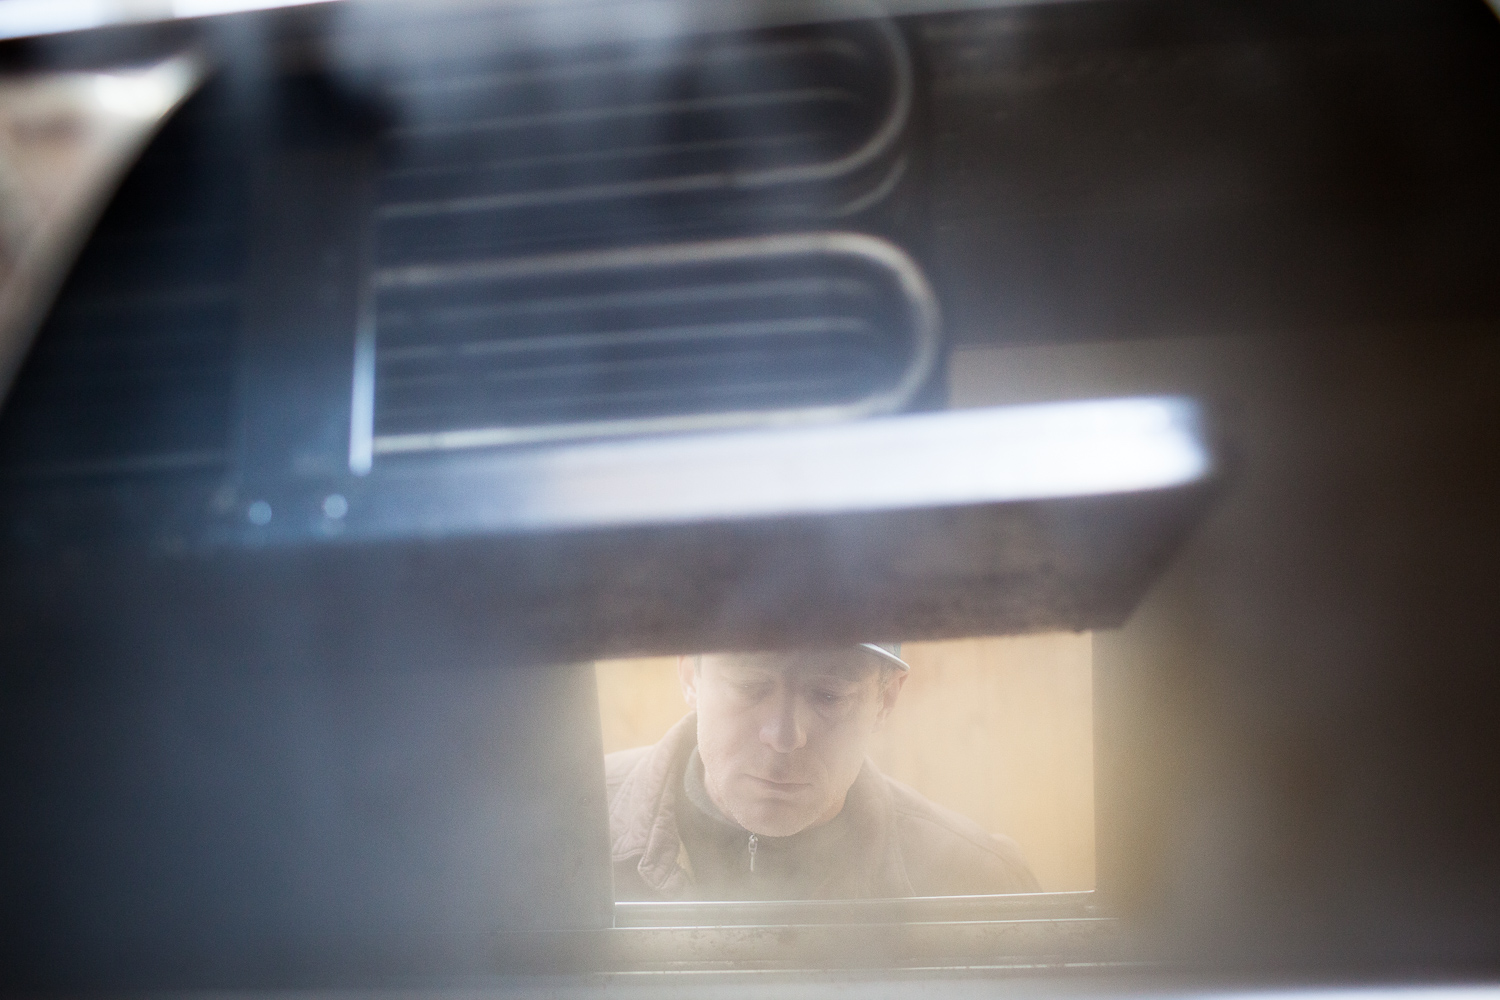 Man peers into an evaporator while sugaring during peak maple syrup season. By Vermont photographer Monica Donovan